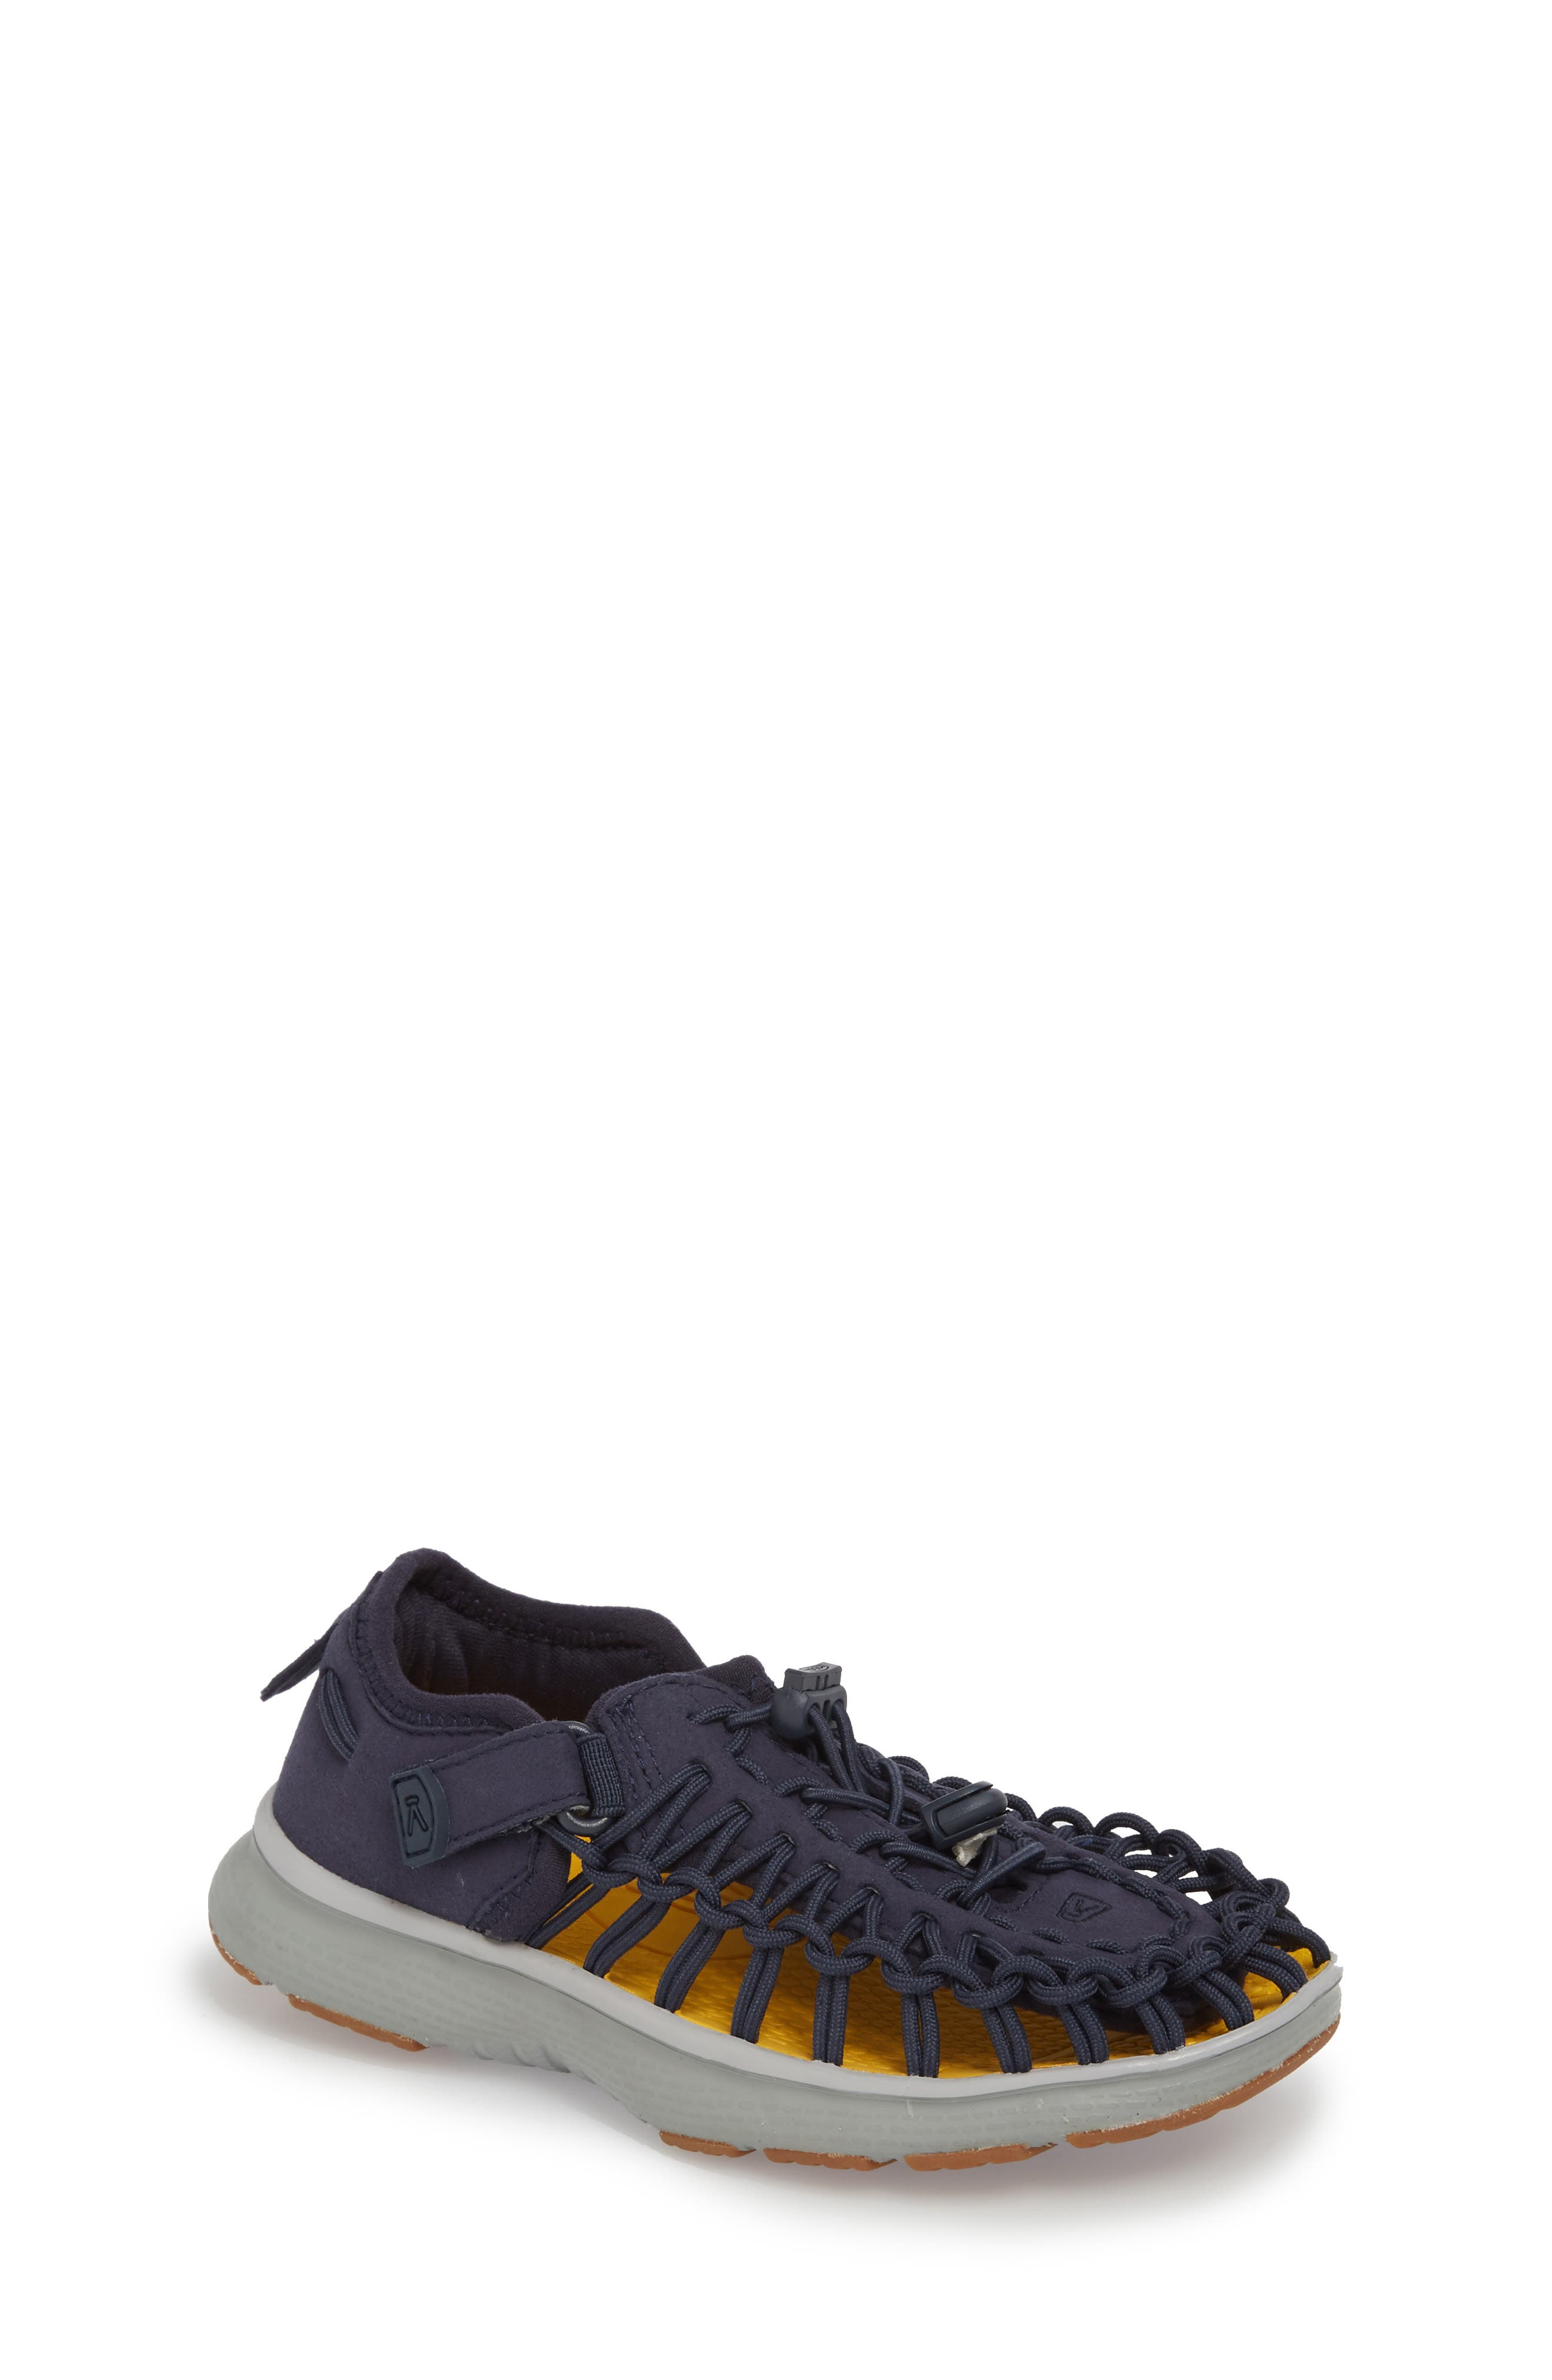 'Uneek' Water Sneaker,                         Main,                         color, Dress Blues/ Neutral Gray